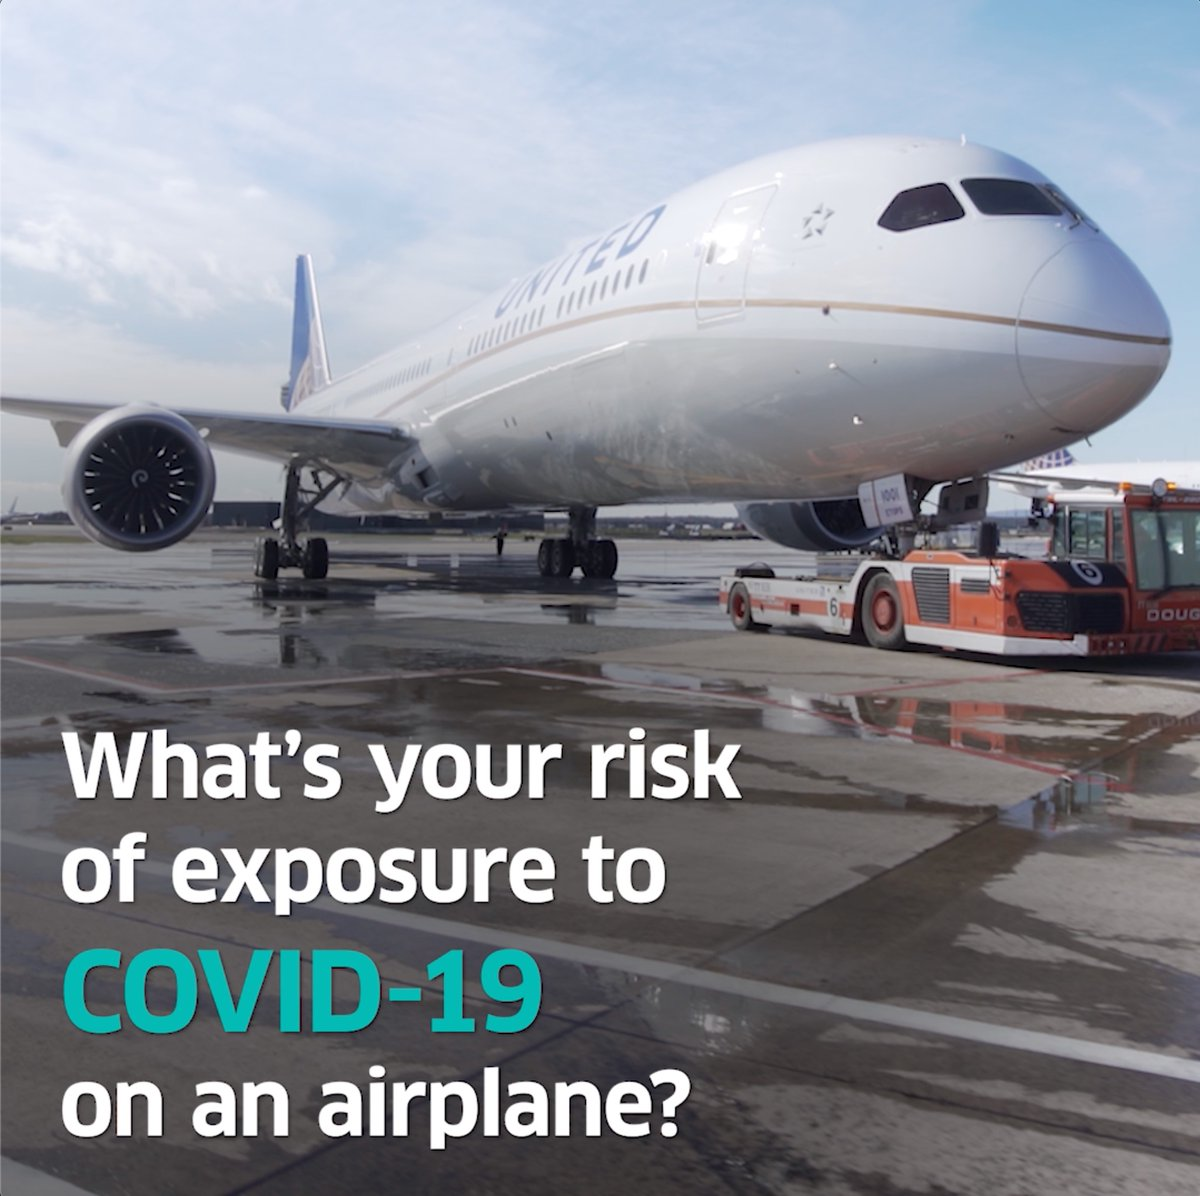 The results are in: Your risk of exposure to COVID-19 is almost non-existent on our flights (yes, even on a full flight).   Learn more about the robotic mannequins, biodefense sensors and the results of this @DeptofDefense study here: https://t.co/NkqsW8r16A https://t.co/KRMCrpPfGX